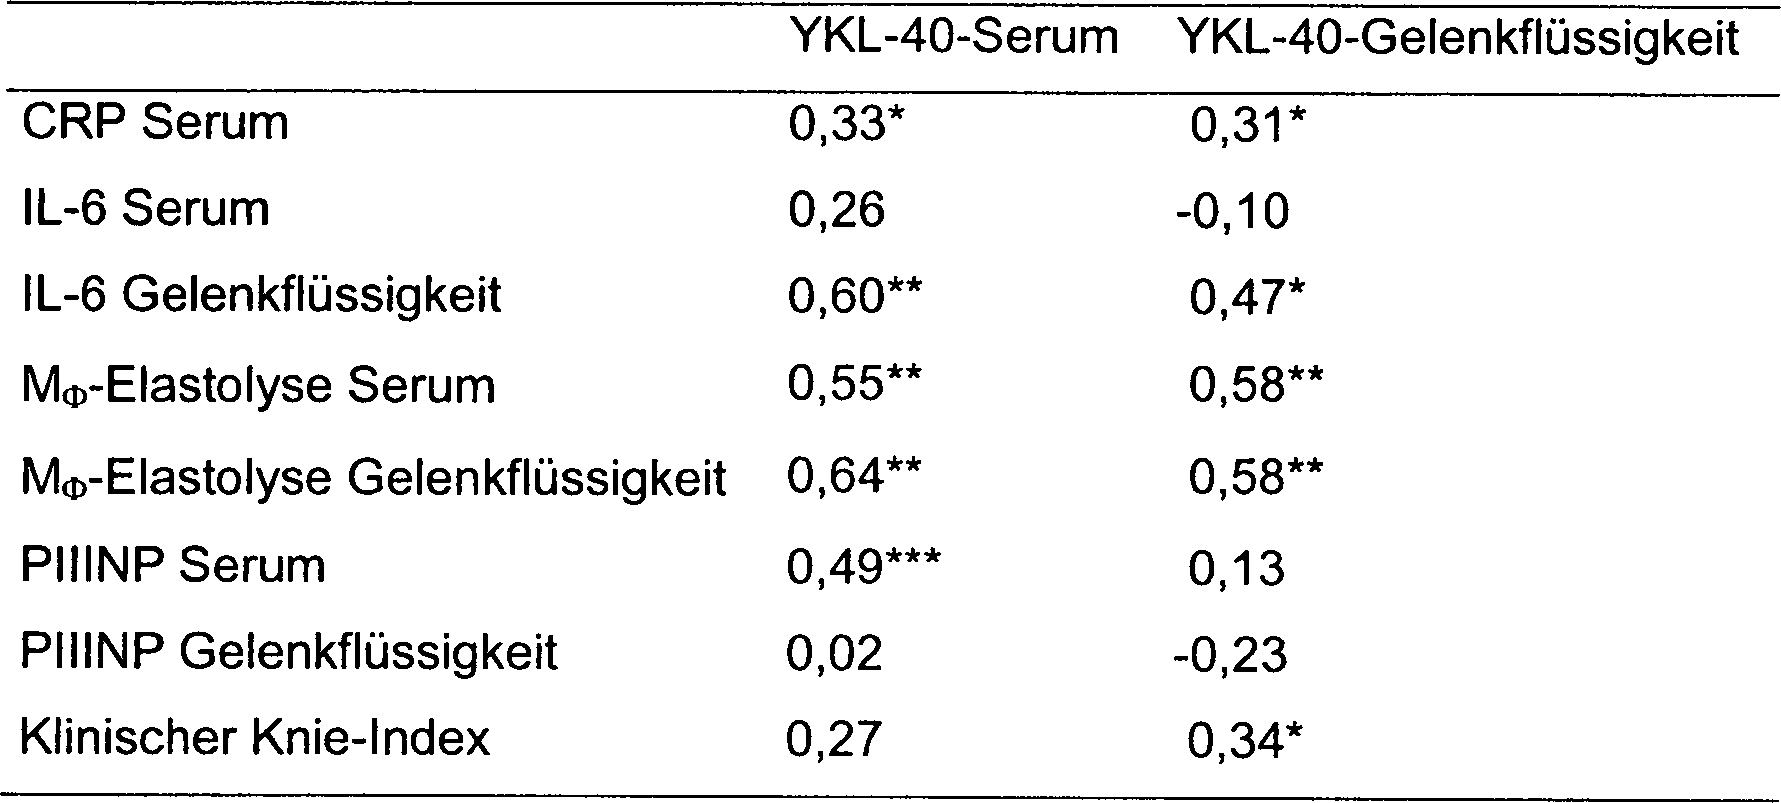 DE69434230T2 - Detection of YKL-40 as a marker for degradation of ...